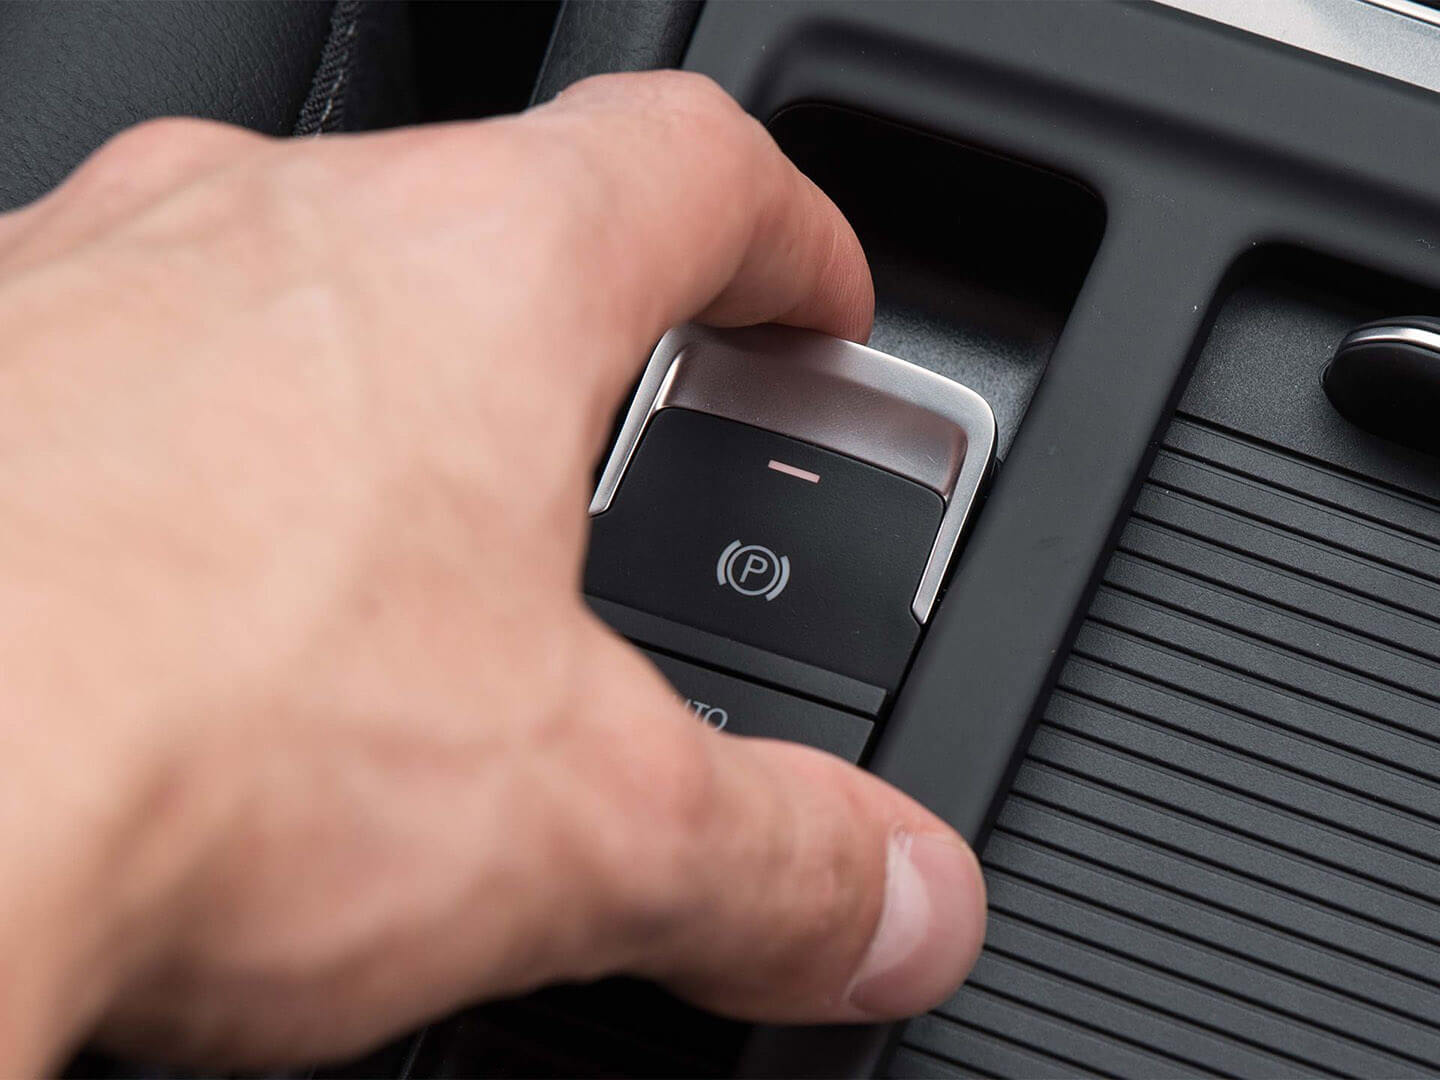 Easier to stop Electromechanical Parking Brake and Auto Hold Image